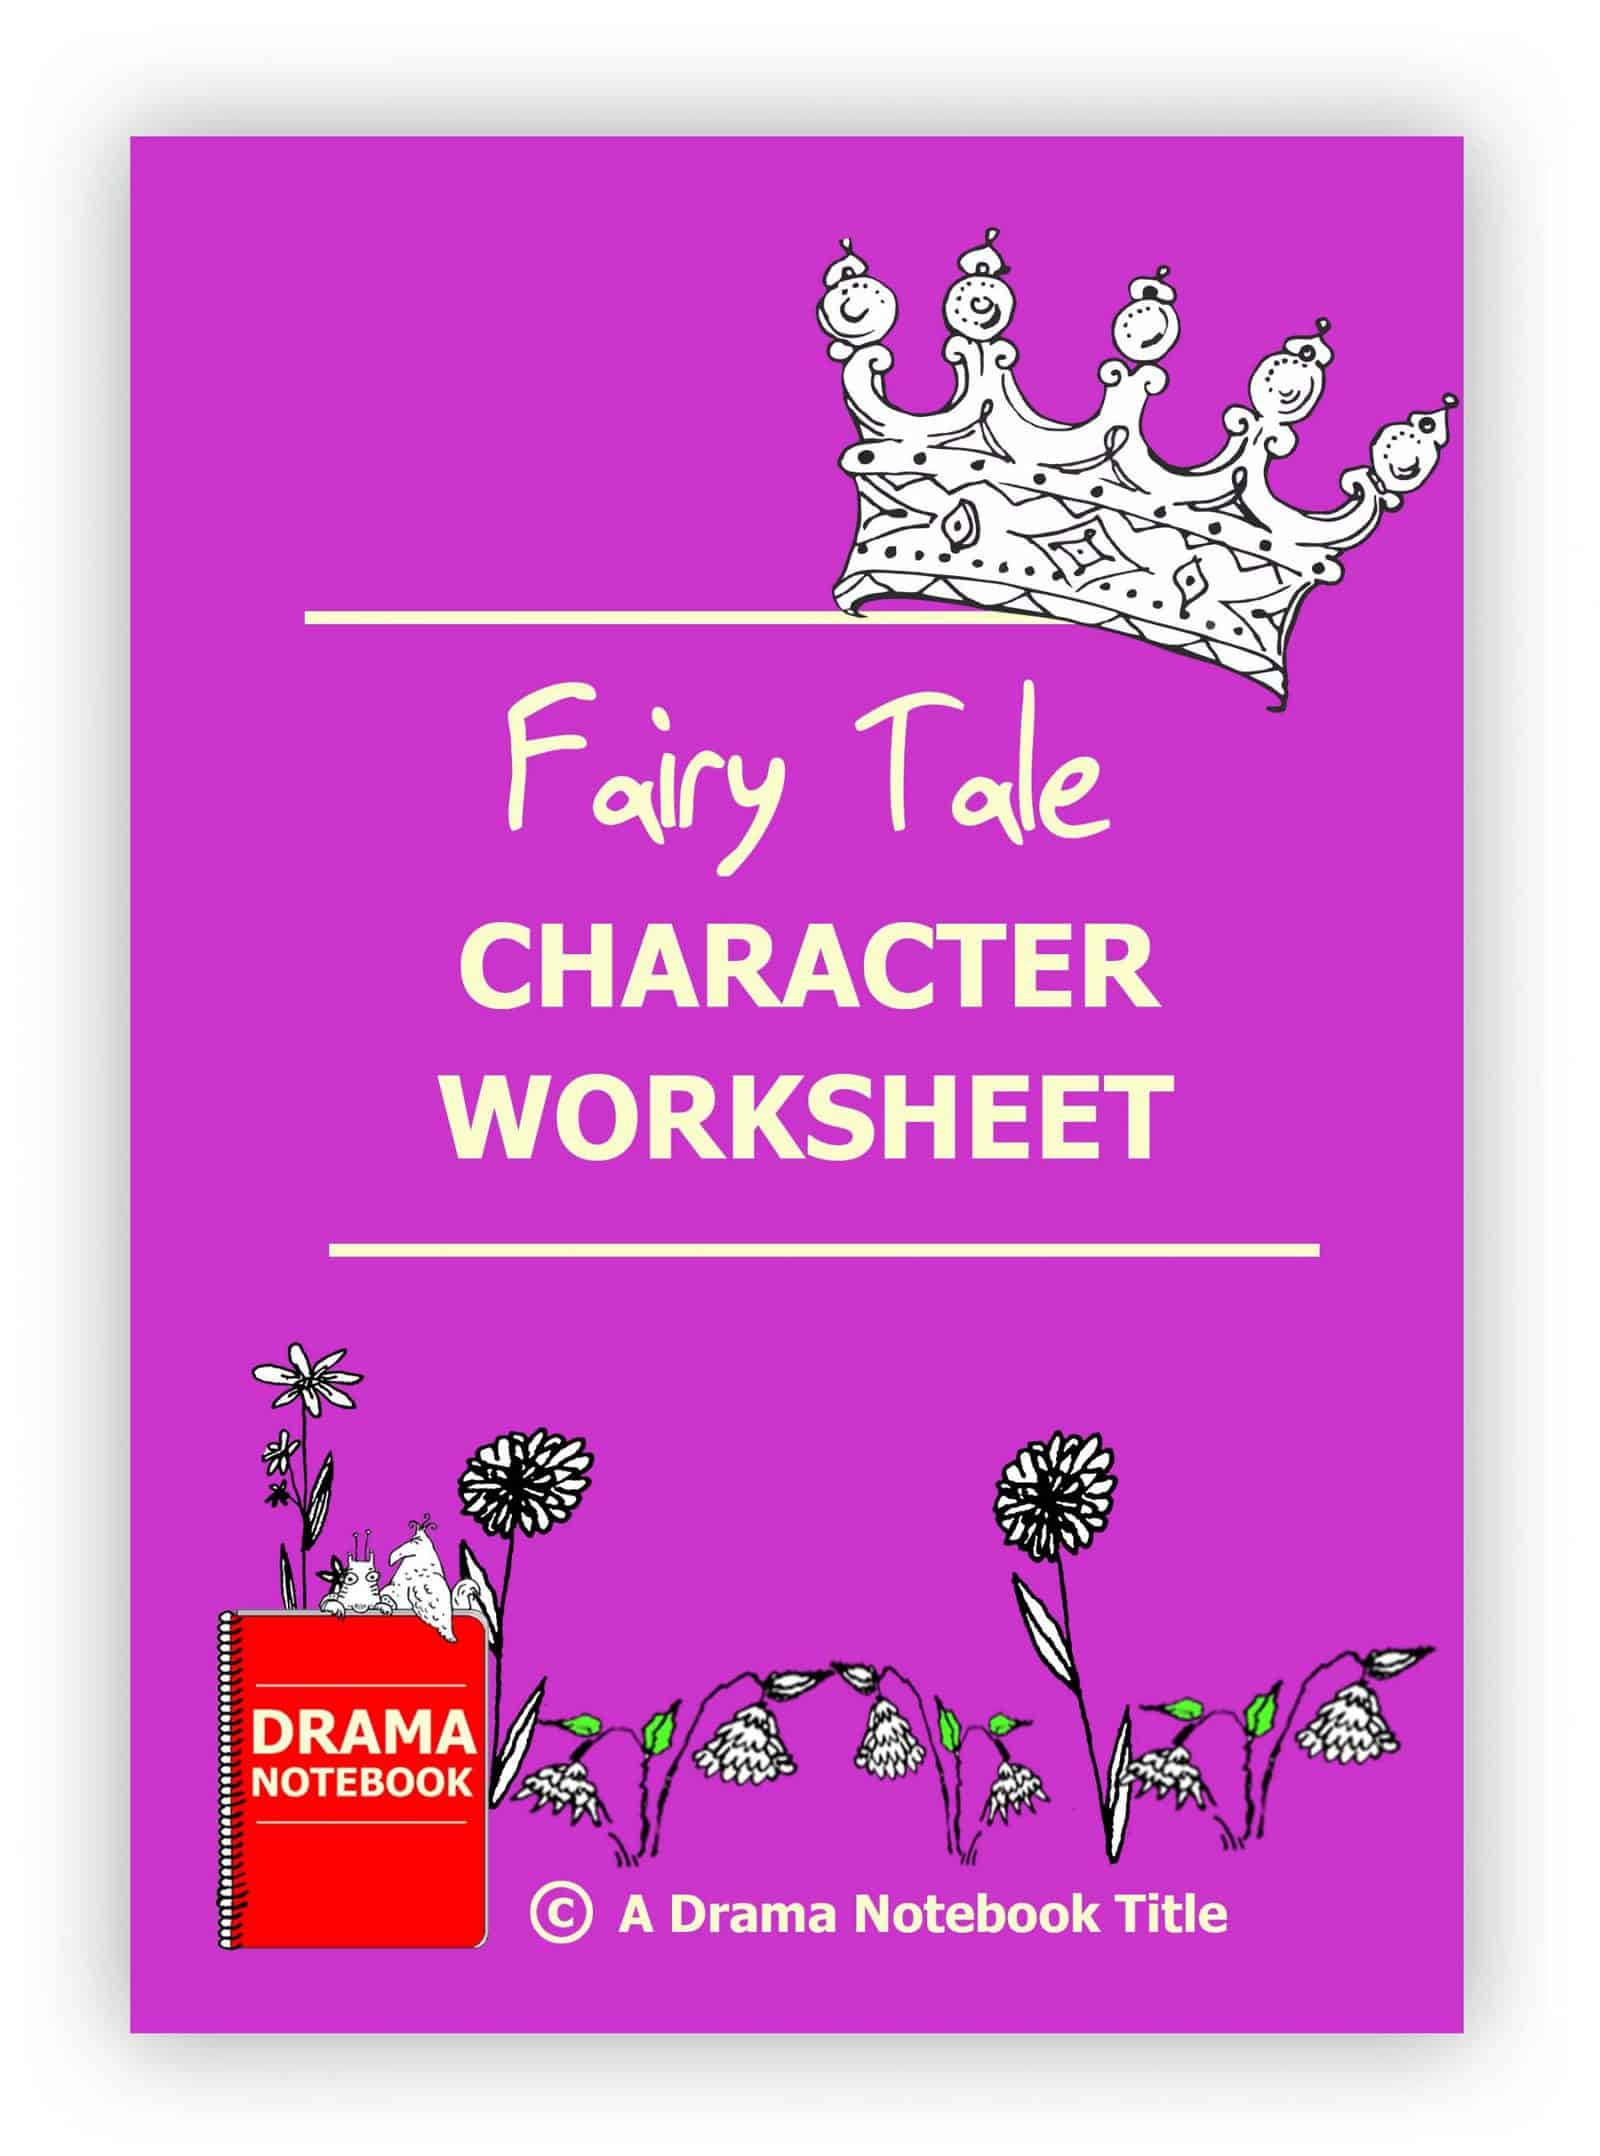 Fairy Tale Character Worksheet for Drama Class